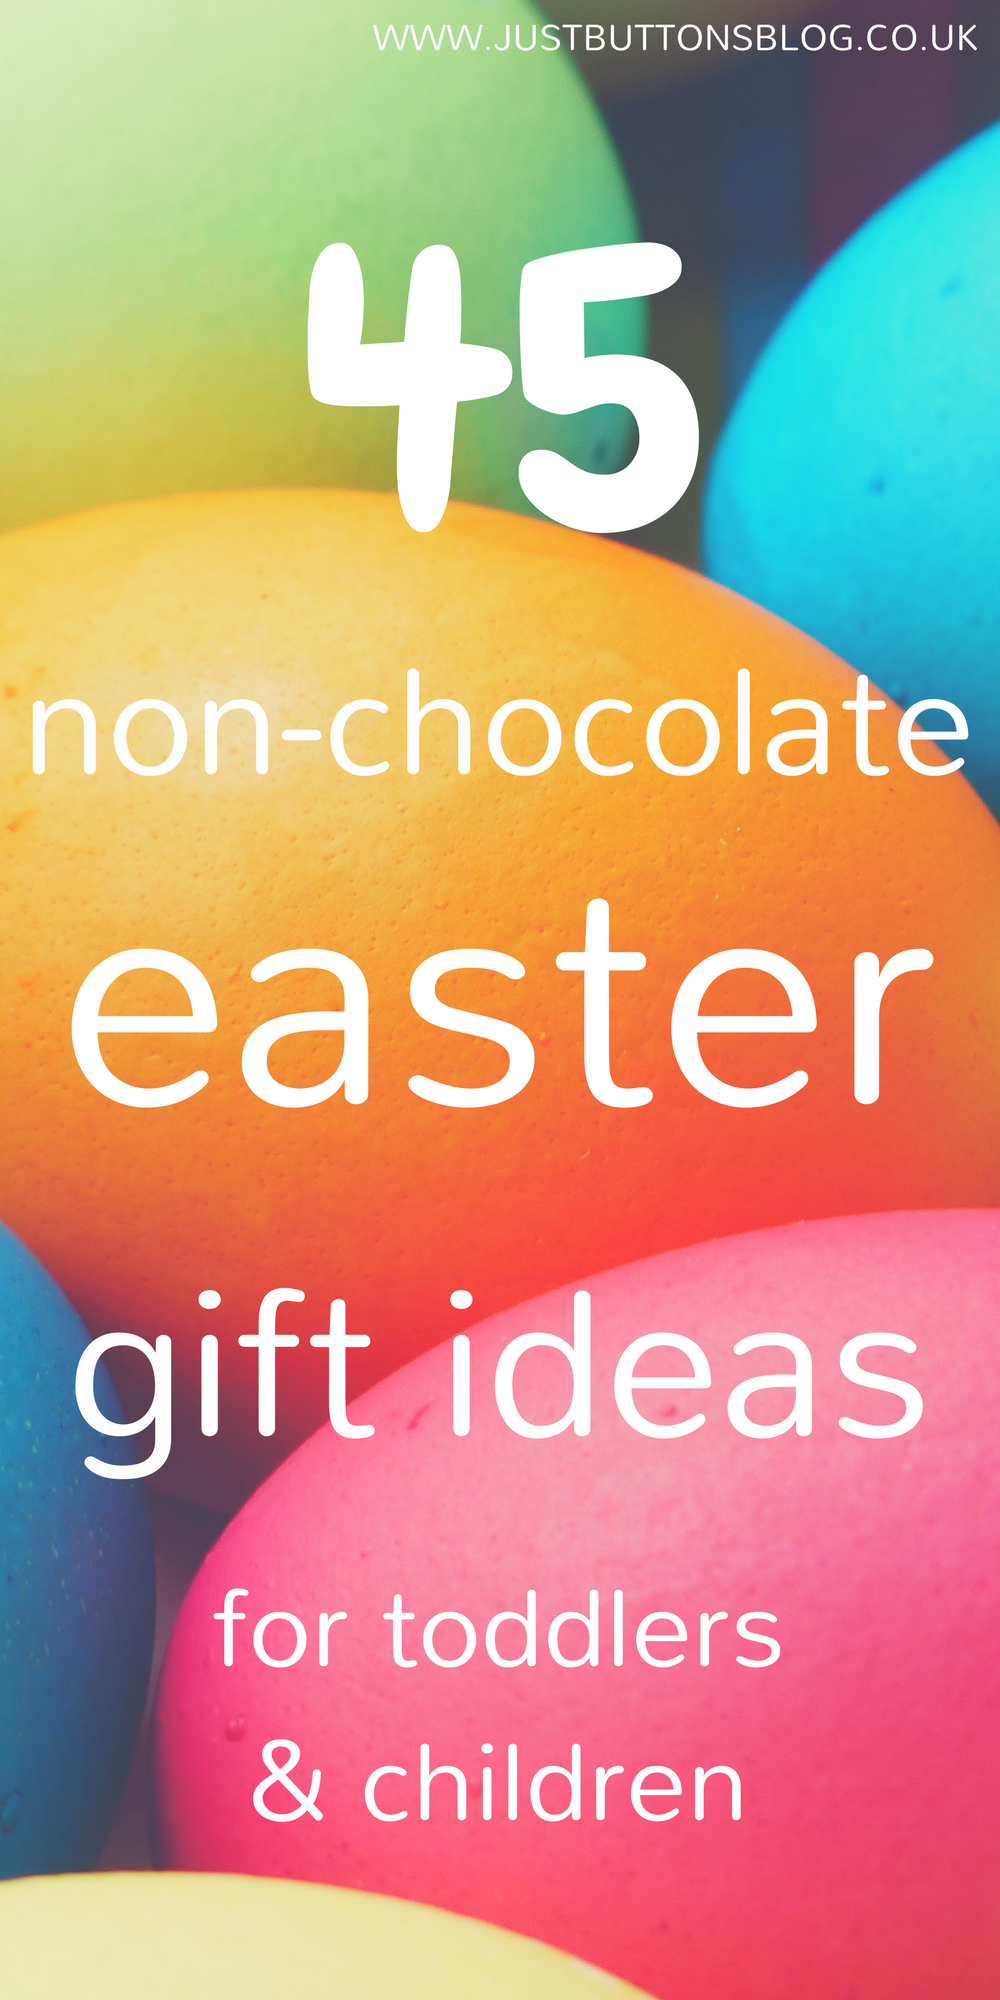 45 non chocolate easter gift ideas for toddlerskids chocolate 45 non chocolate easter gift ideas for toddlerskids just buttons blog negle Gallery